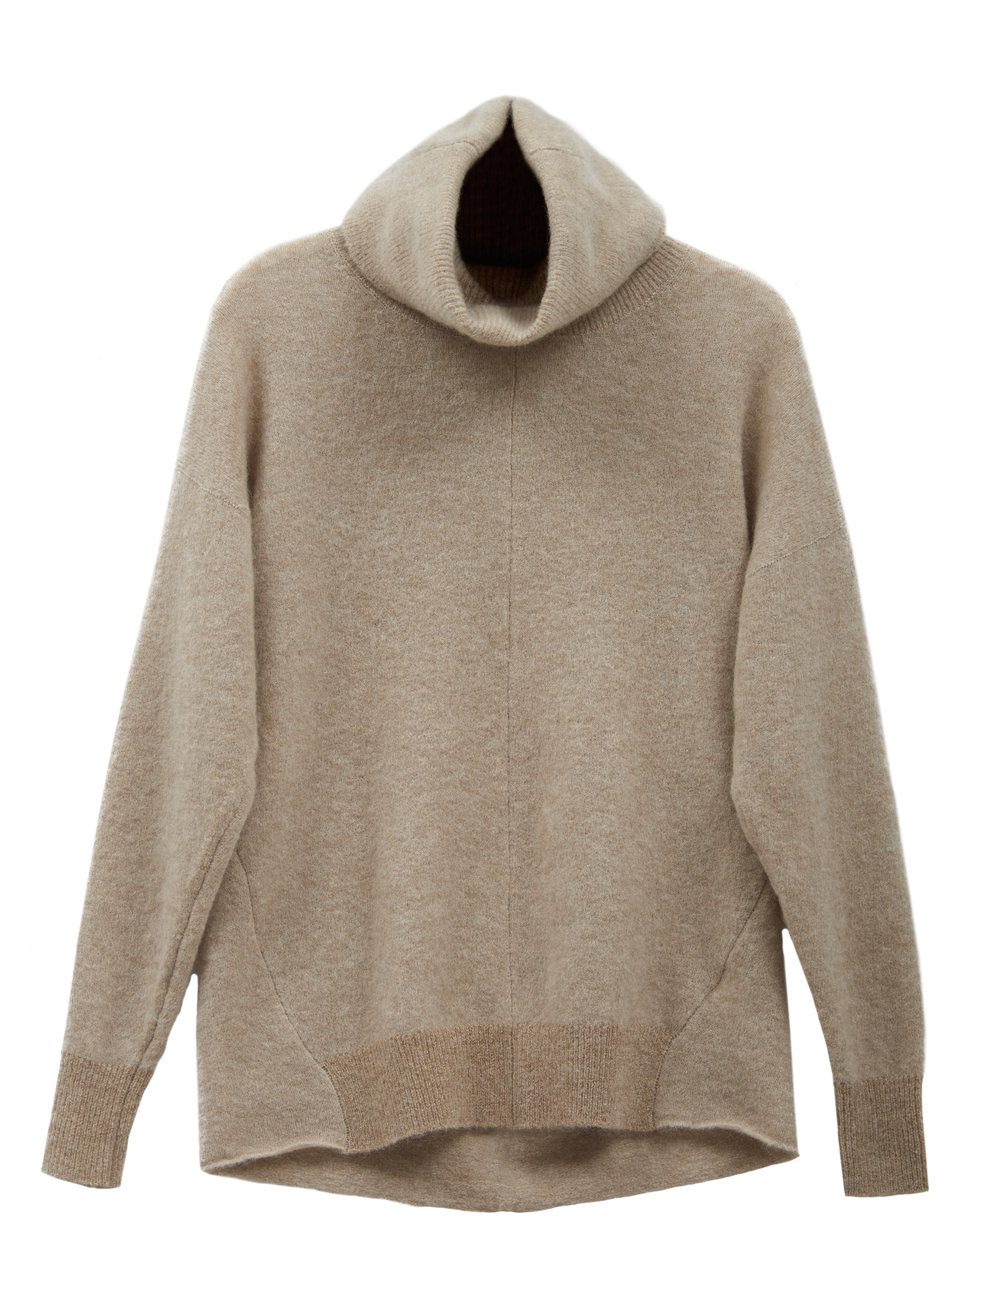 in.no Edition 1.0 cowl neck jumper